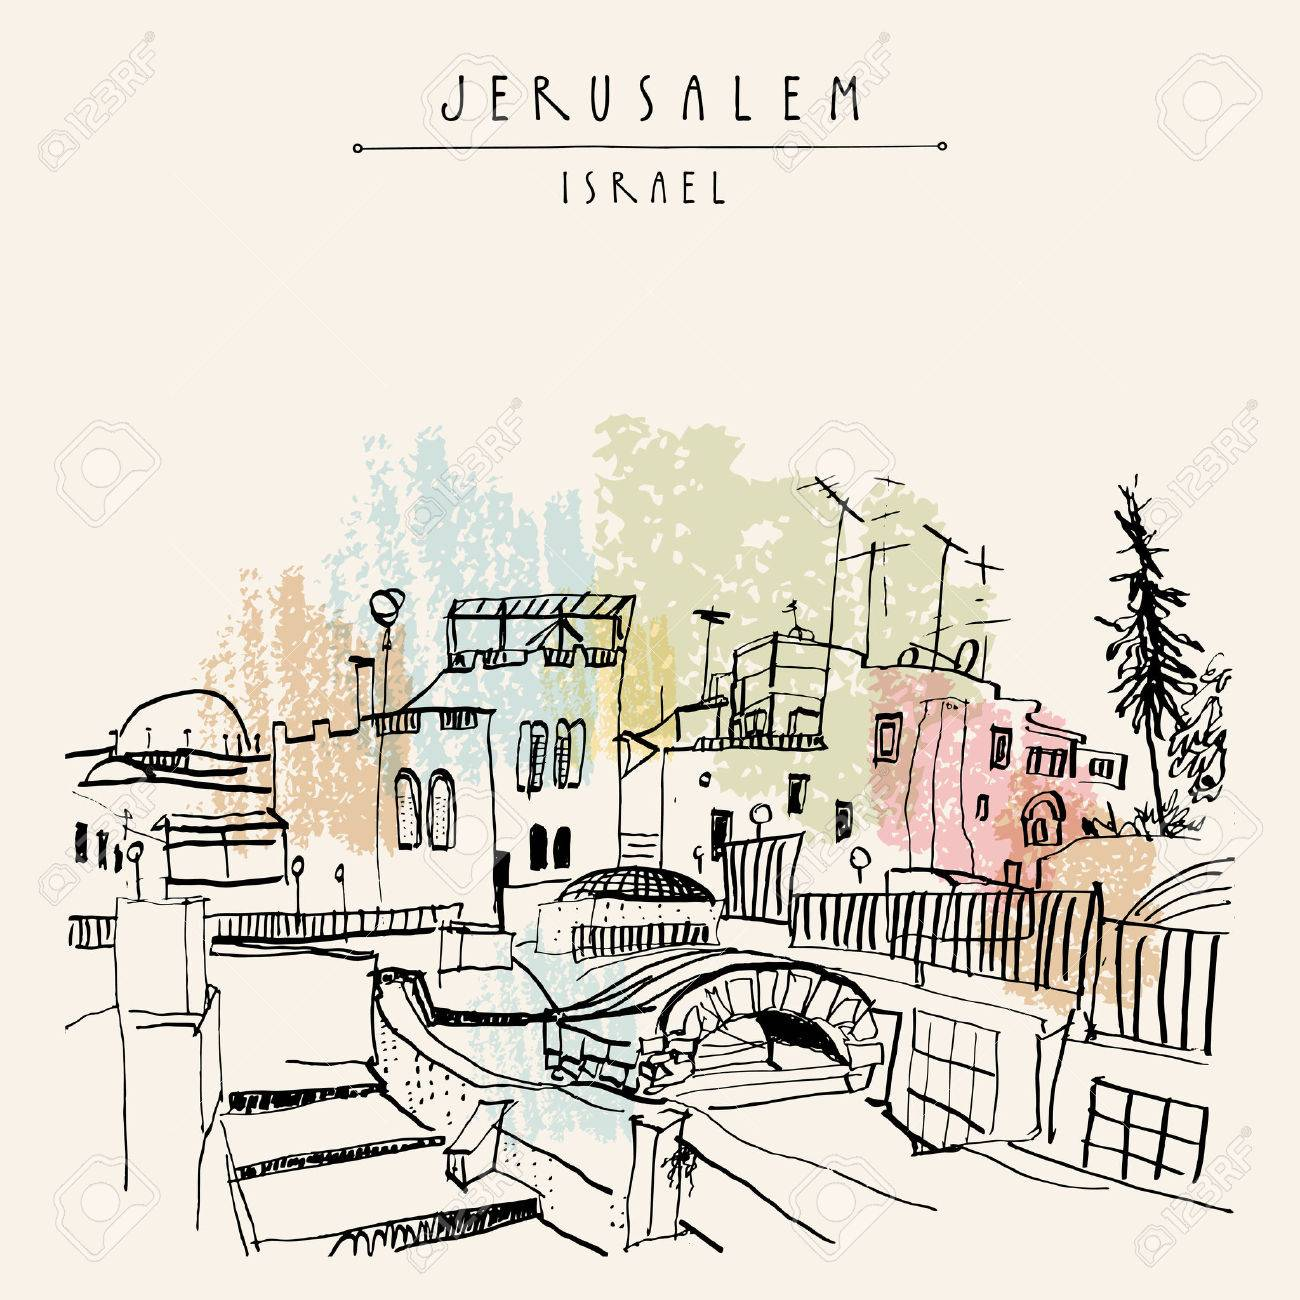 Roofs of Jerusalem above Arabic market, Israel. Jewish quoter. Travel sketch. Hand drawn touristic postcard, poster, calendar or book illustration. Jerusalem city view postcard with hand lettering in vector - 66245113